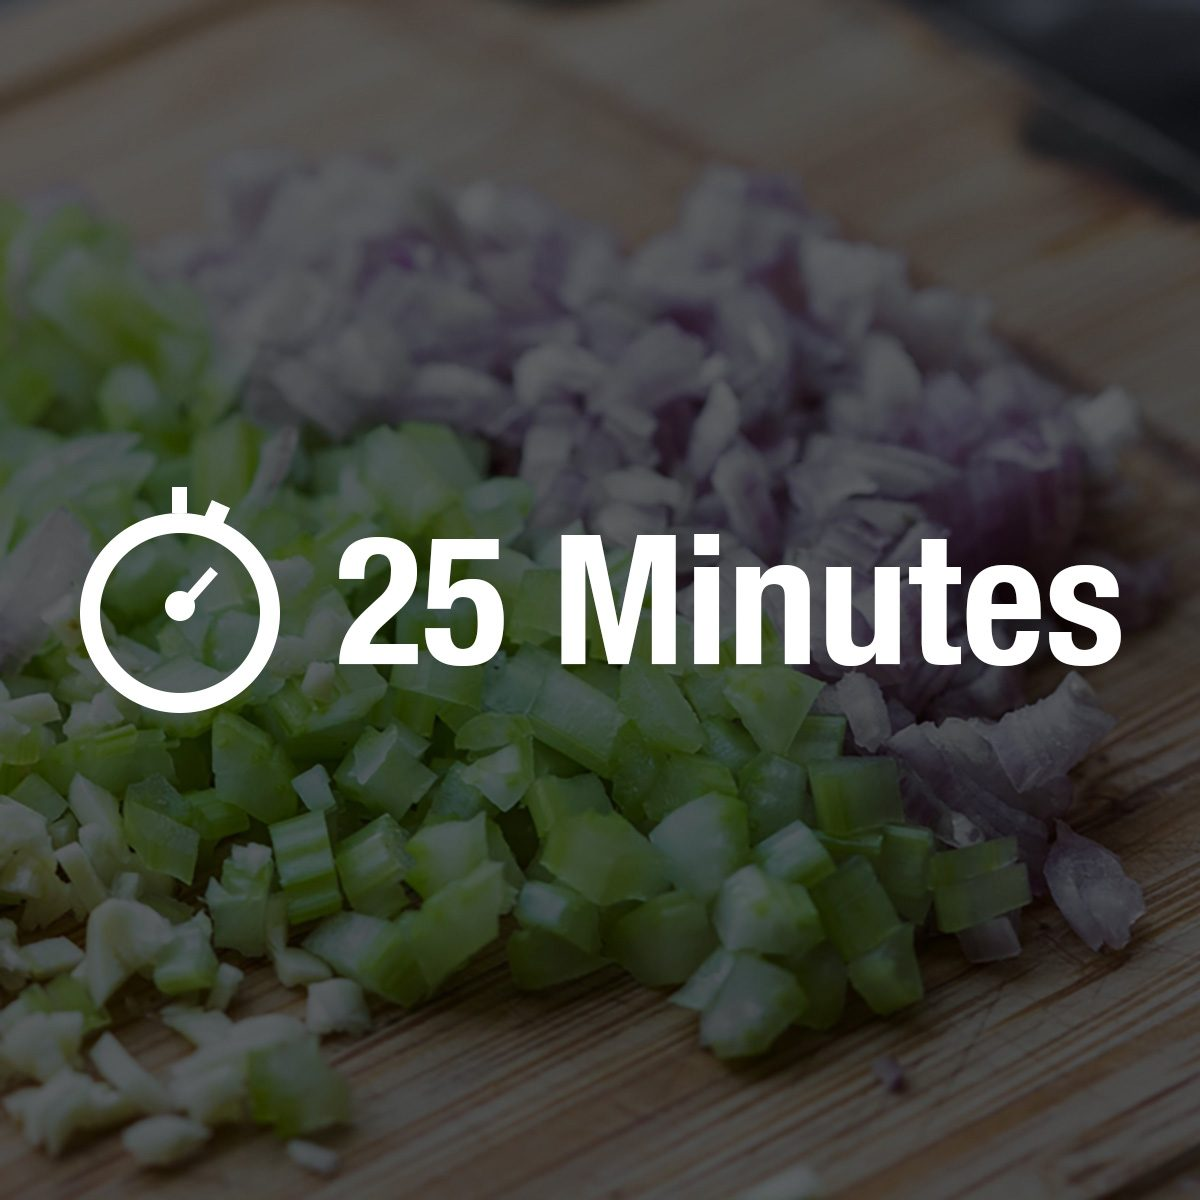 Cooking dinner, chopped vegetables onions, garlic, celery